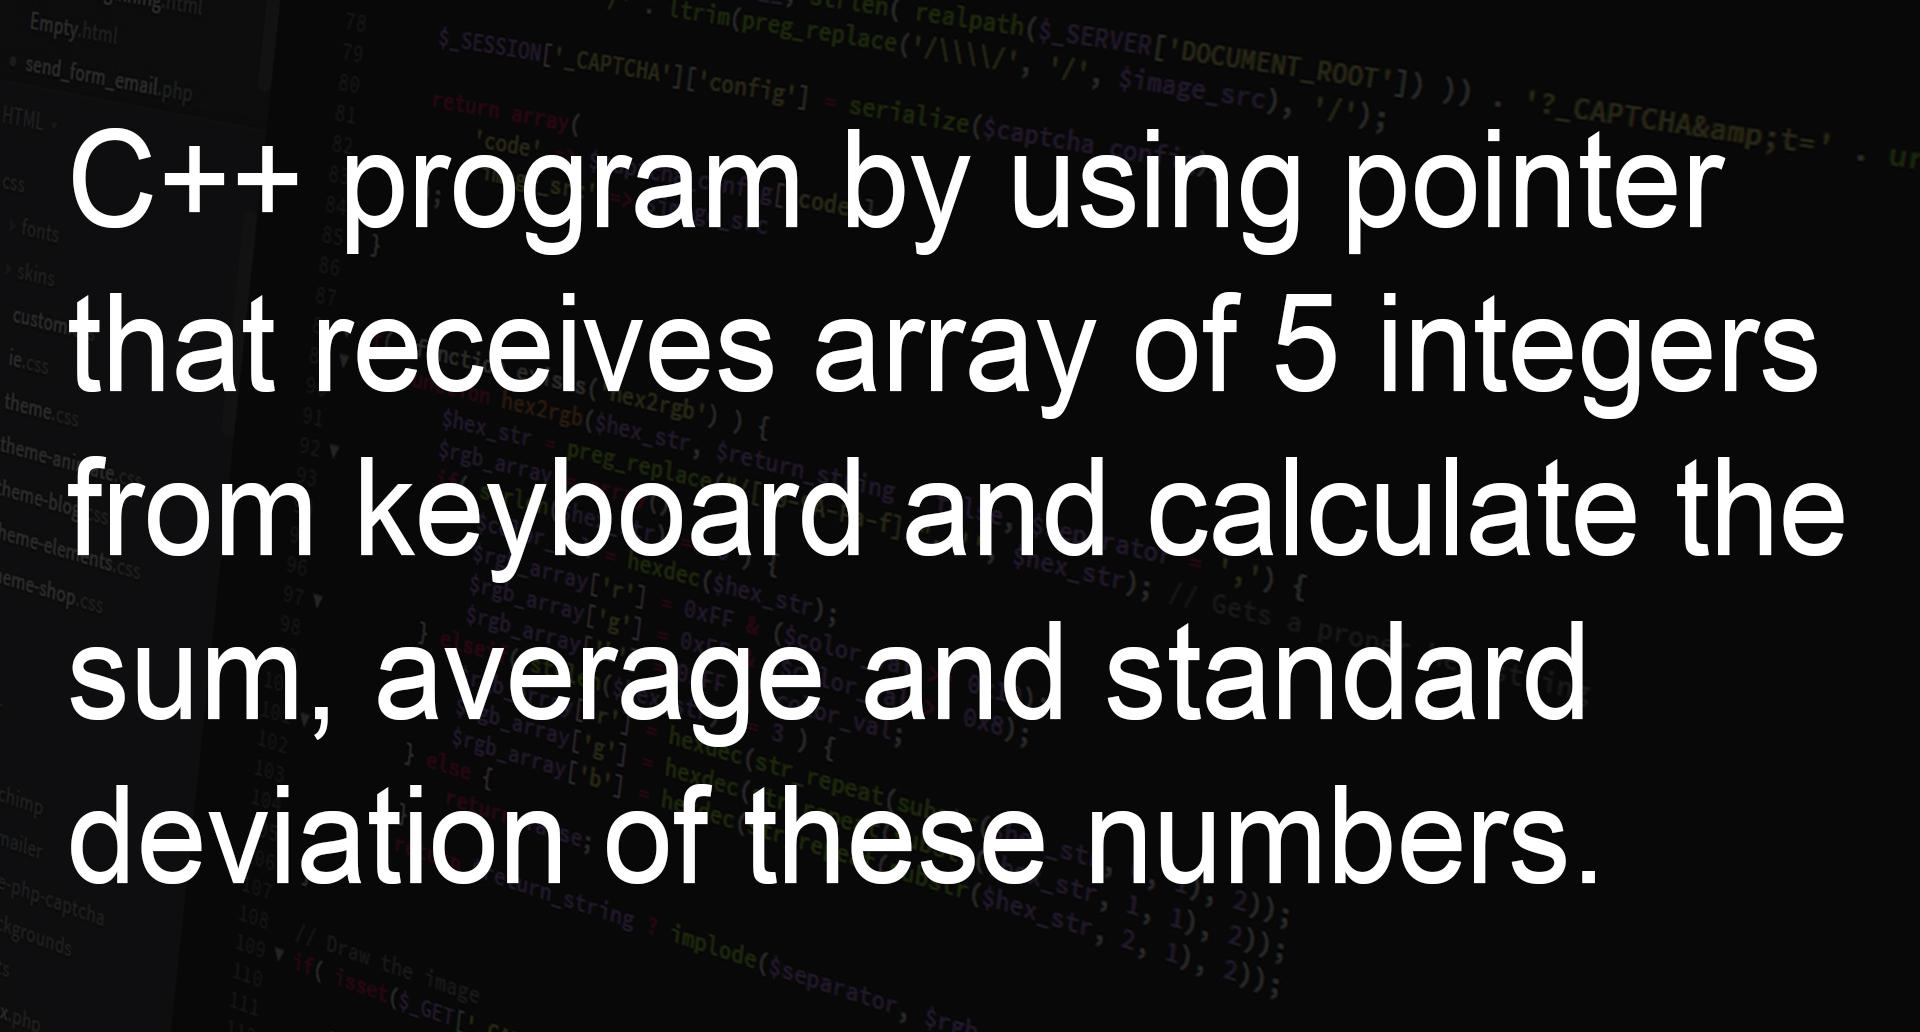 C Program By Using Pointer That Receives Array Of 5 Integers Numbers And Calculate The Sum Average And Standard Deviation Of These Numbers Pow() is a mathematical function that returns the base value raised to the exp power. c program by using pointer that